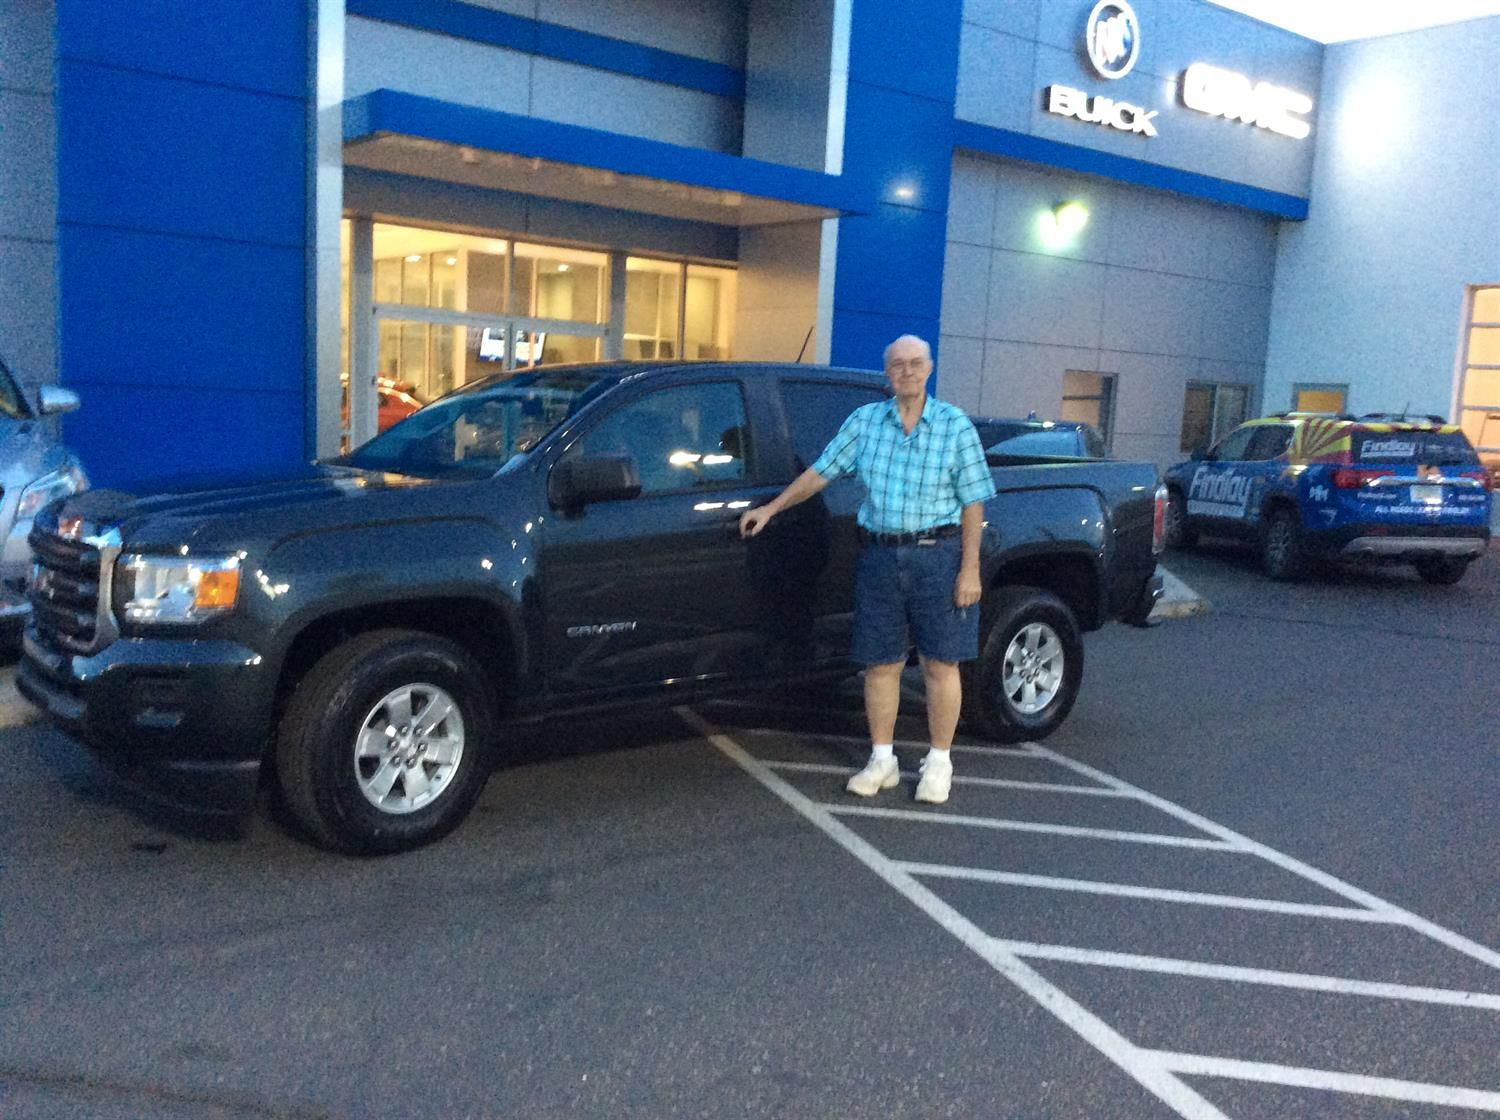 William We Hope You Enjoy Your New 2018 Gmc Canyon Congratulations And Best Wishes From Findlay Chevy B Buick Gmc Congratulations And Best Wishes Gmc Canyon